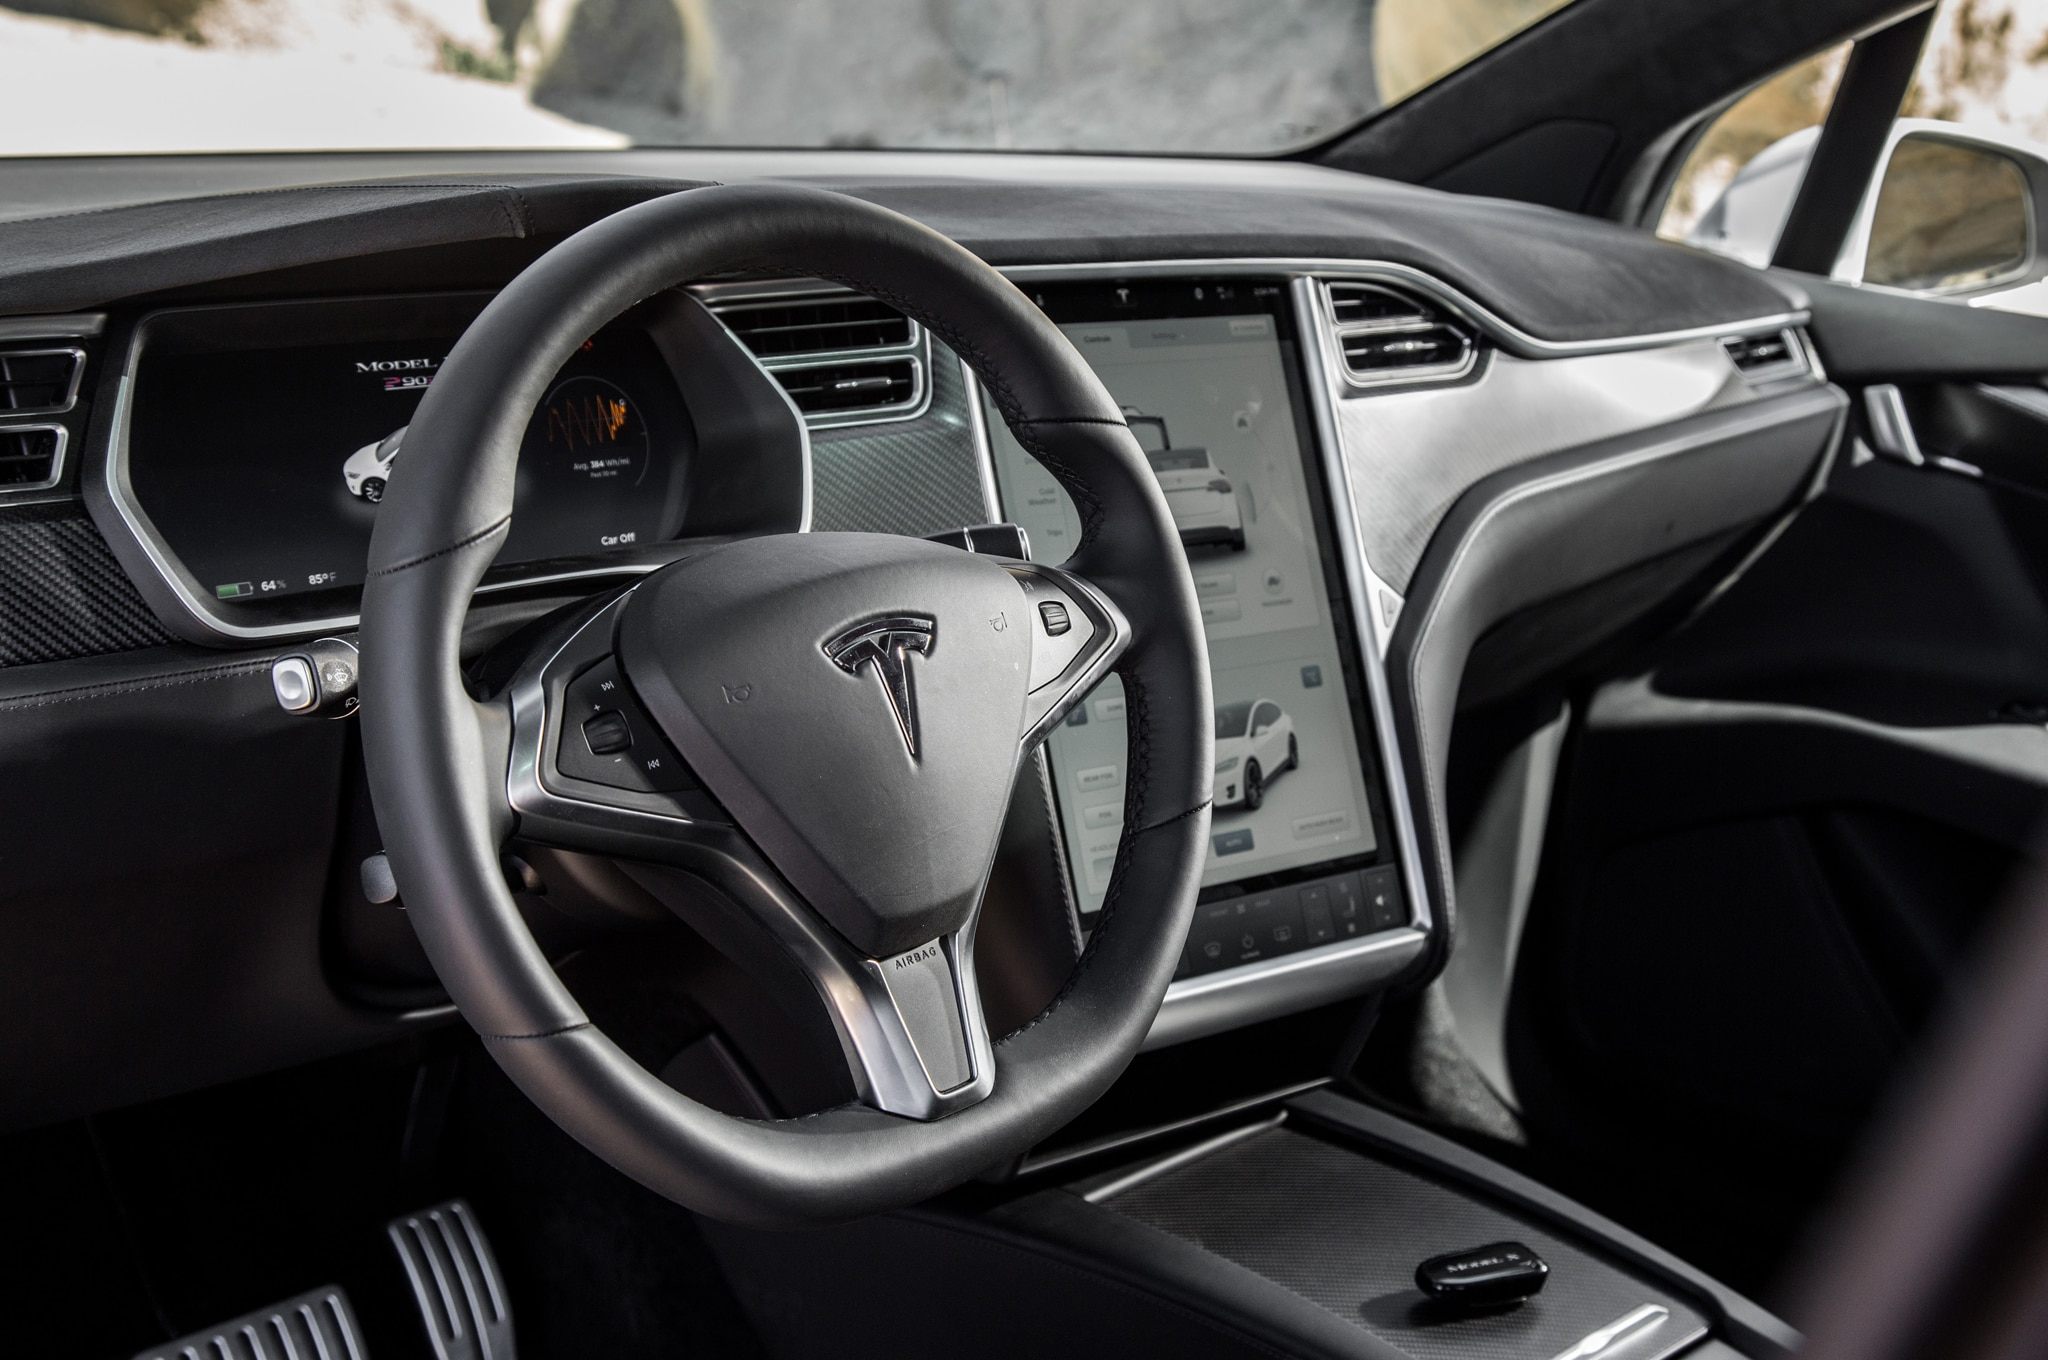 Tesla suv interior tesla image for Tesla model x interieur